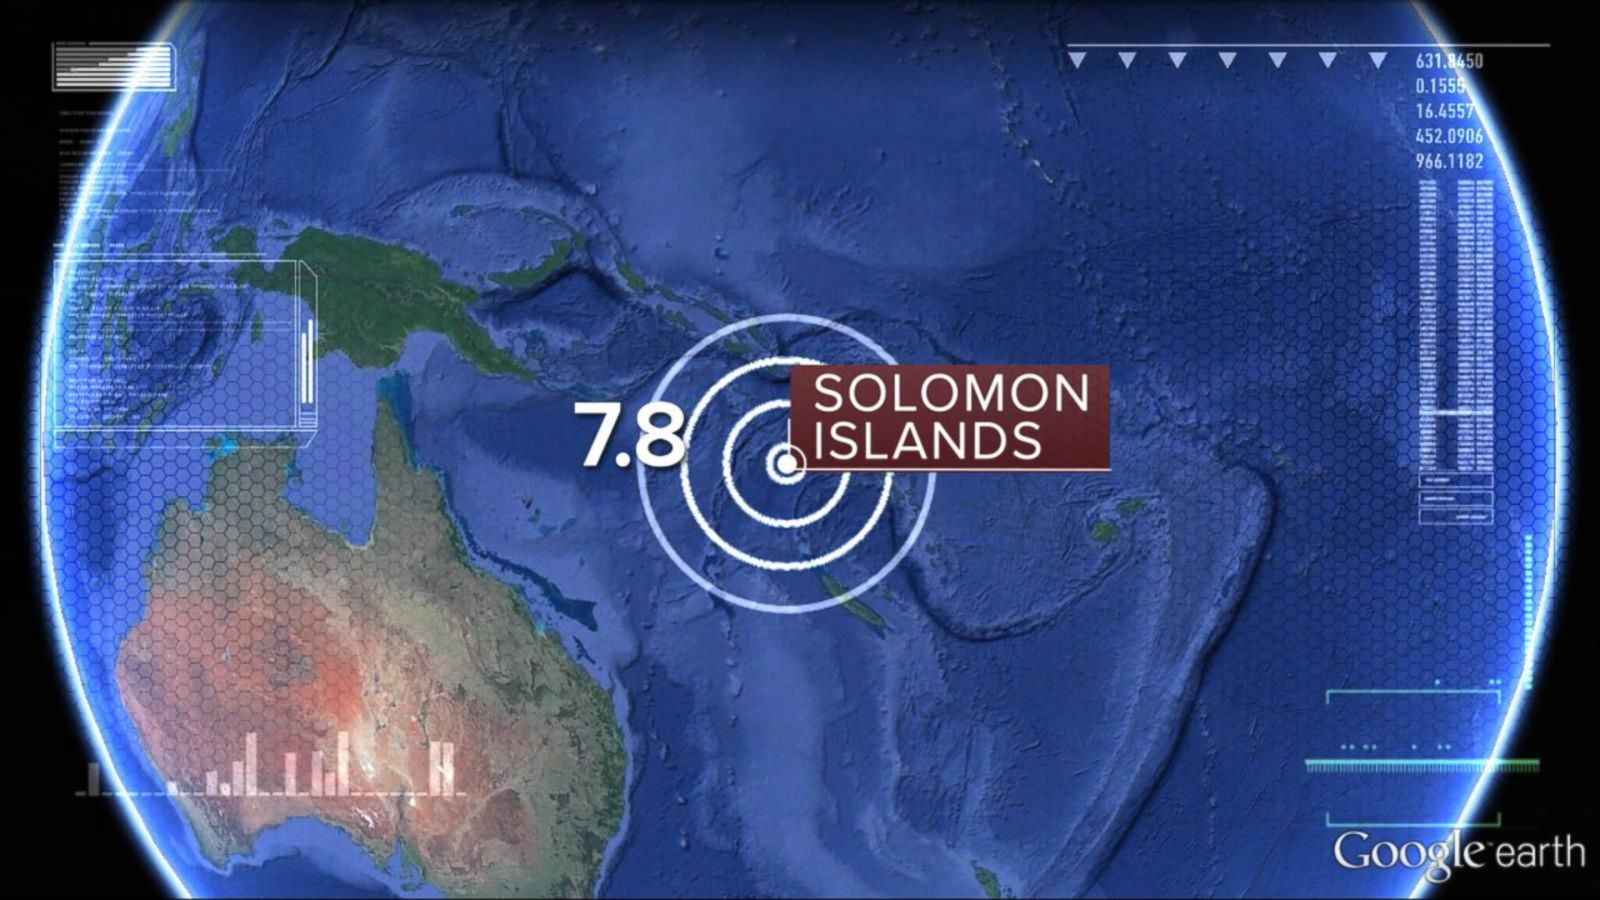 The quake's center was some 42 miles southwest of the Solomon Islands.